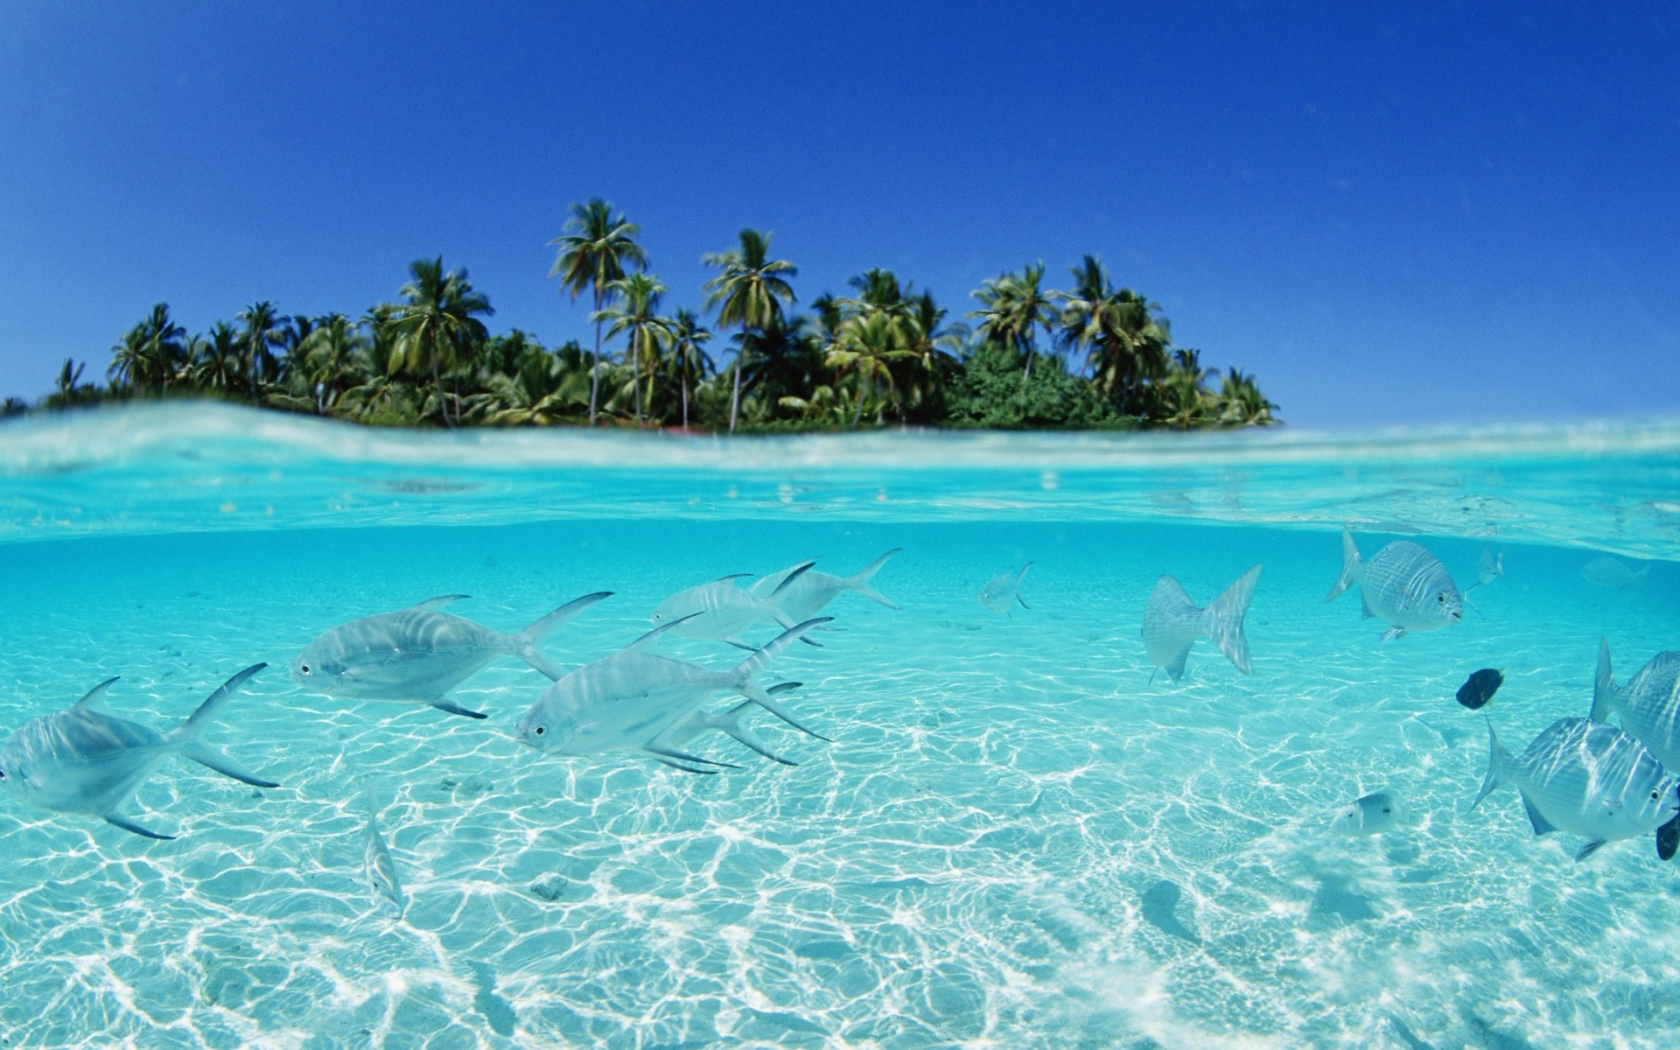 Free download Maldives beach fish wallpapers [1680x1050] for your